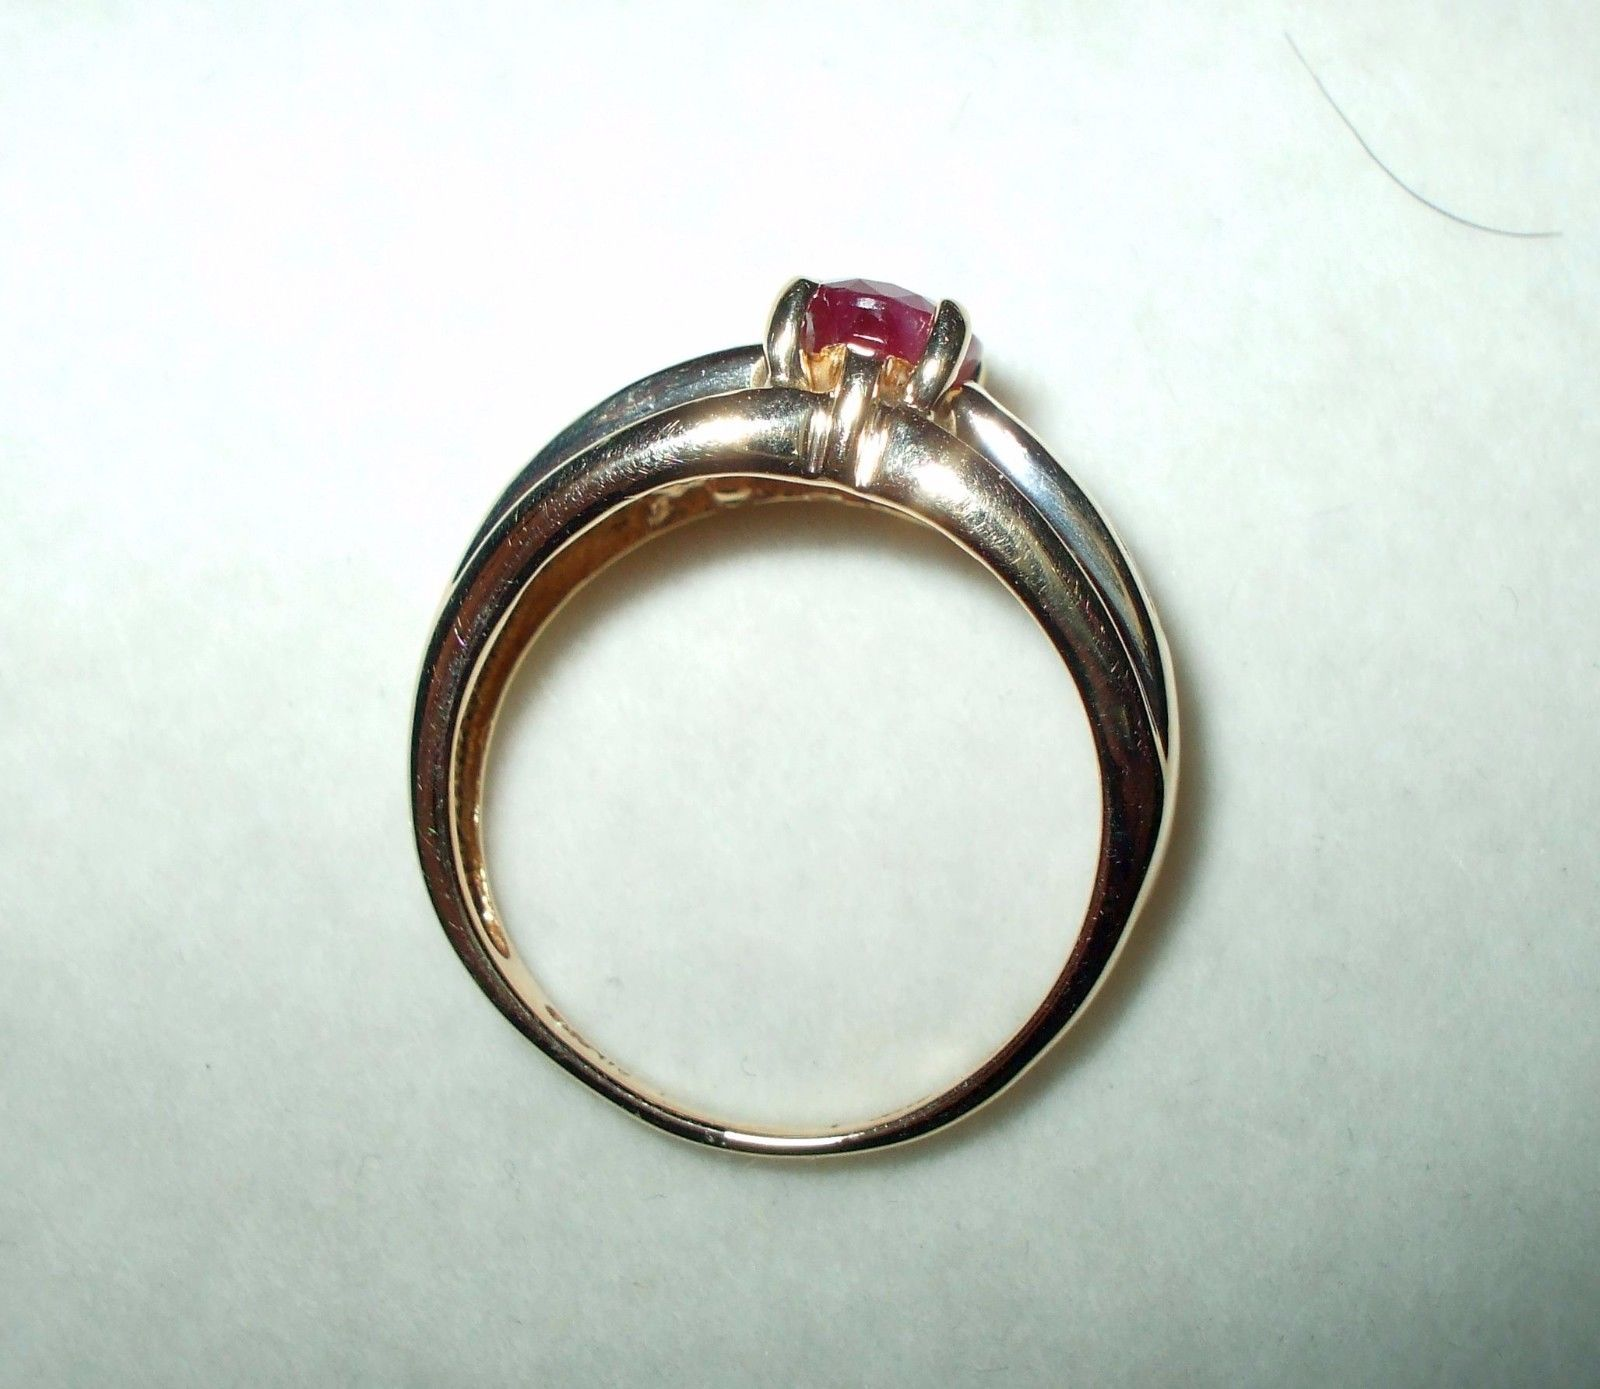 Genuine 1.0 ct Oval Ruby & Diamond Ring 14K yellow gold $2500 NWT